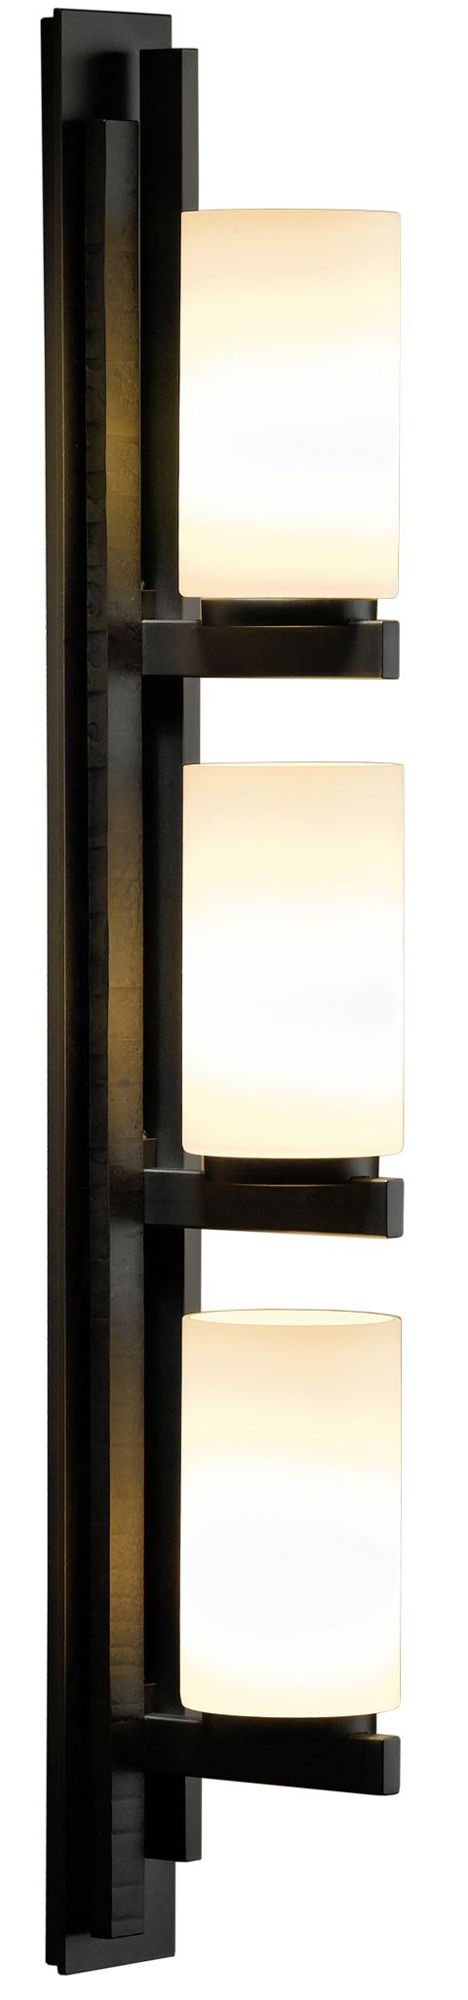 Ondrian Vertical 3 Light Bathroom Vanity Light By Hubbardton Forge